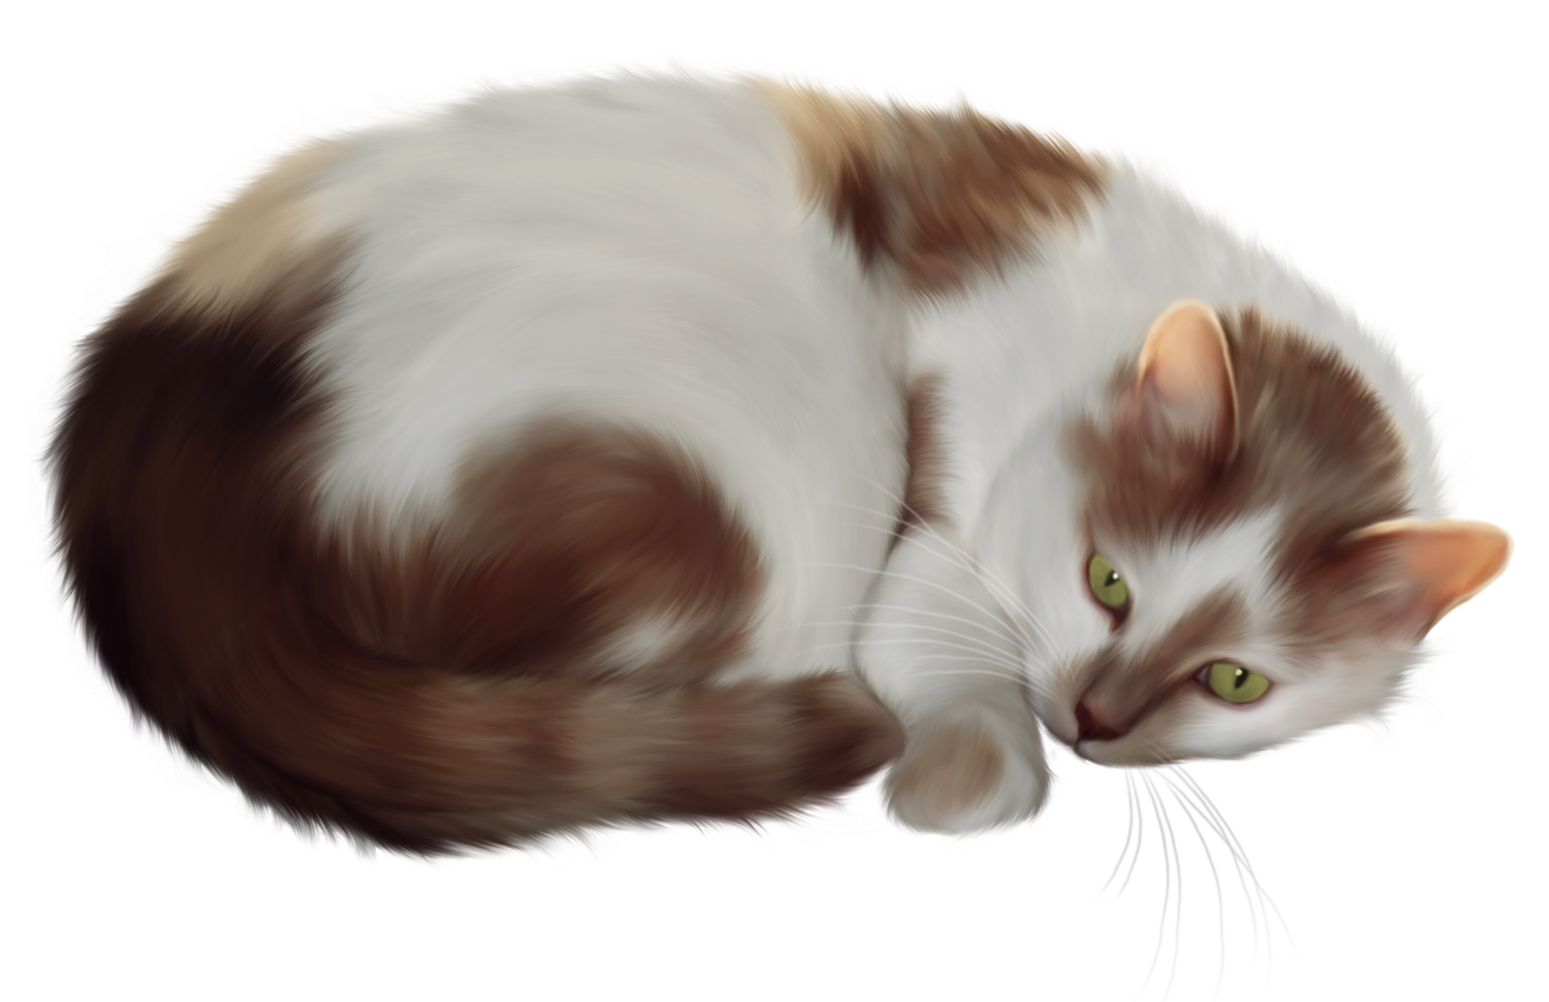 Clipart cat transparent background. Png gallery yopriceville high